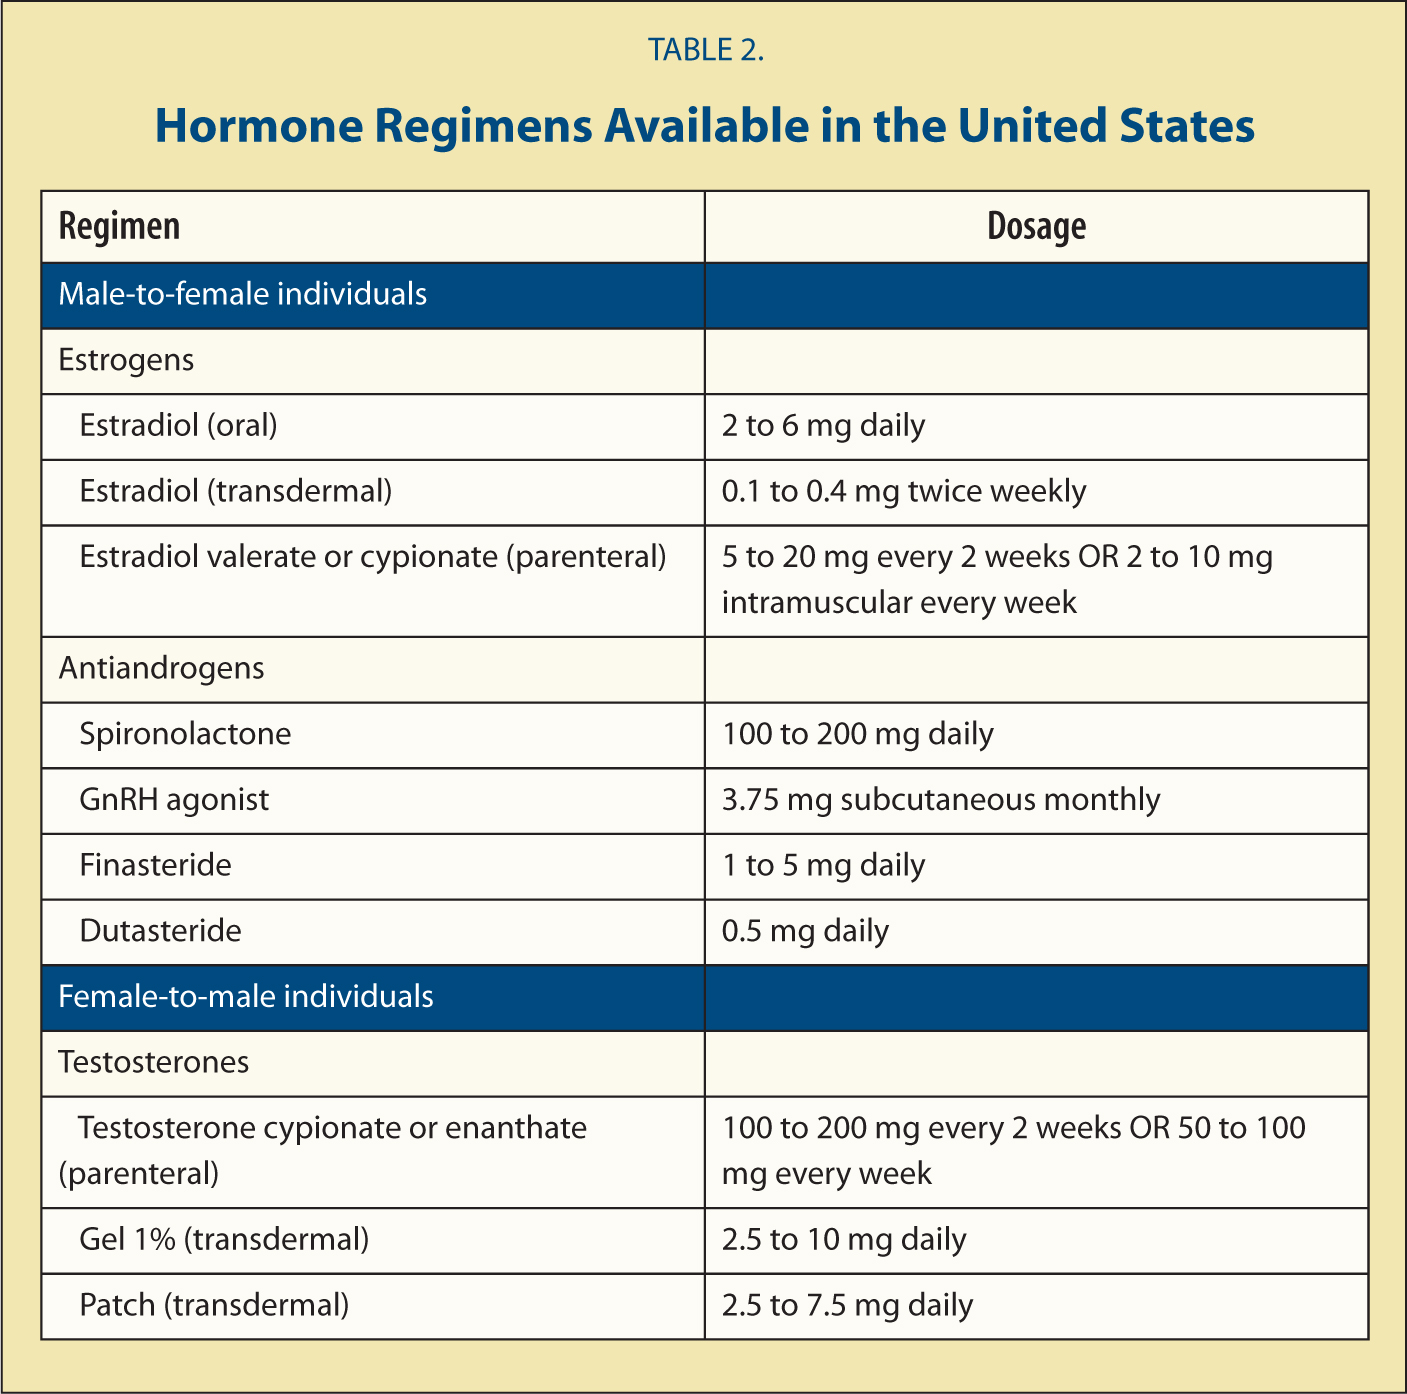 Hormone Regimens Available in the United States